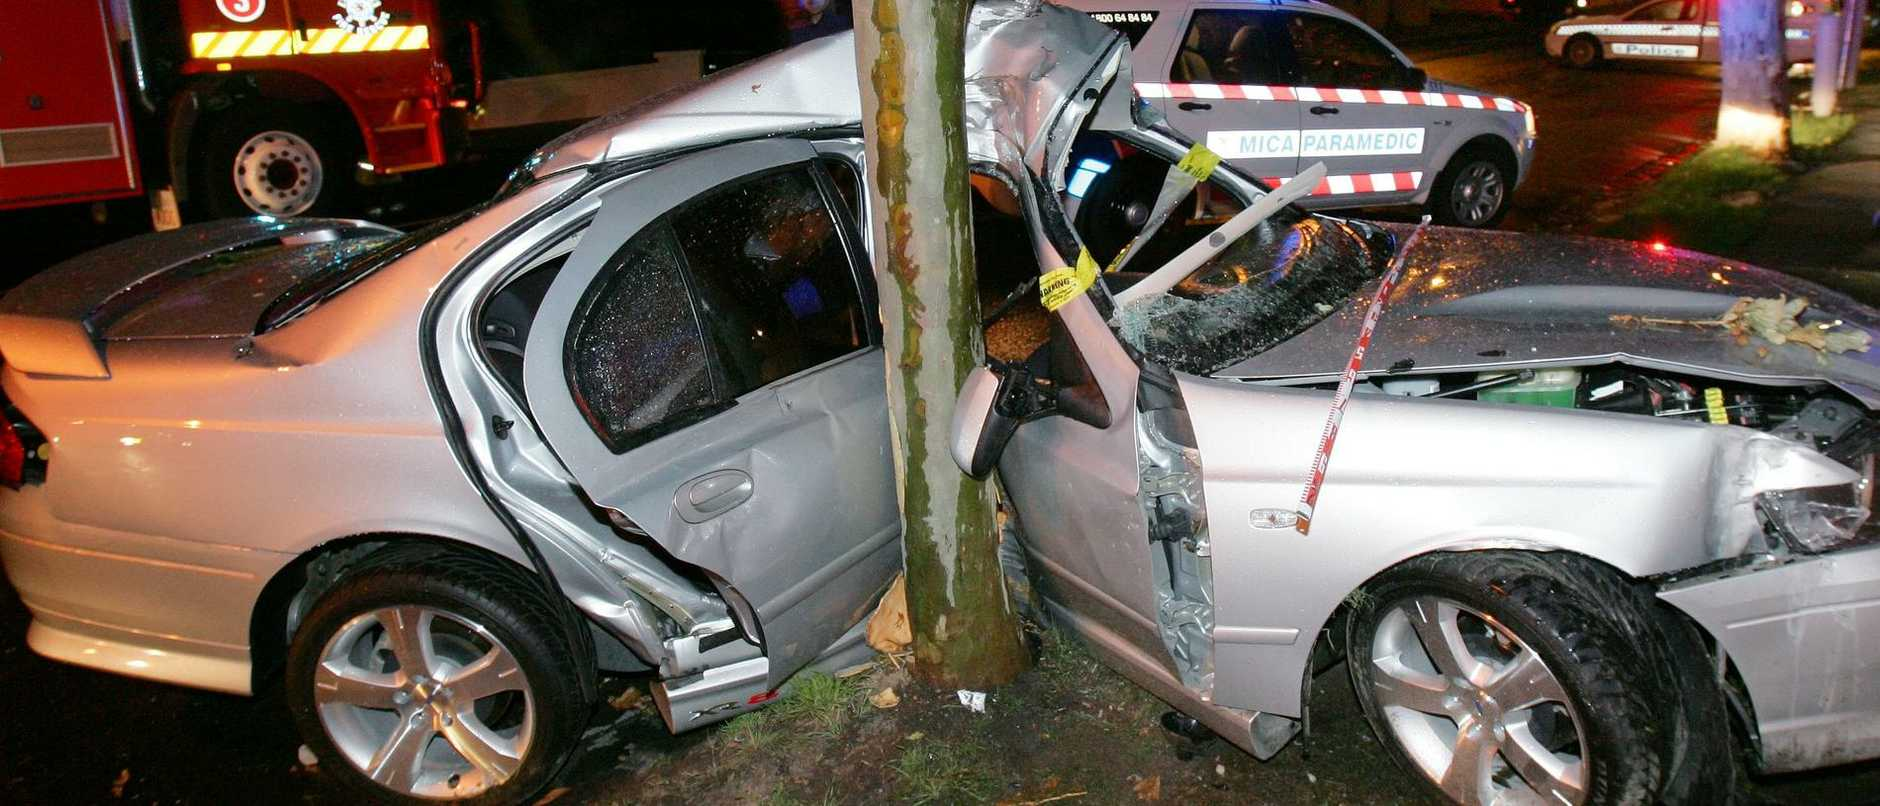 12/12/2005 NEWS: A car hit a tree in Orrong Road tonight during a flash storm, the driver suffered only minor injuries.